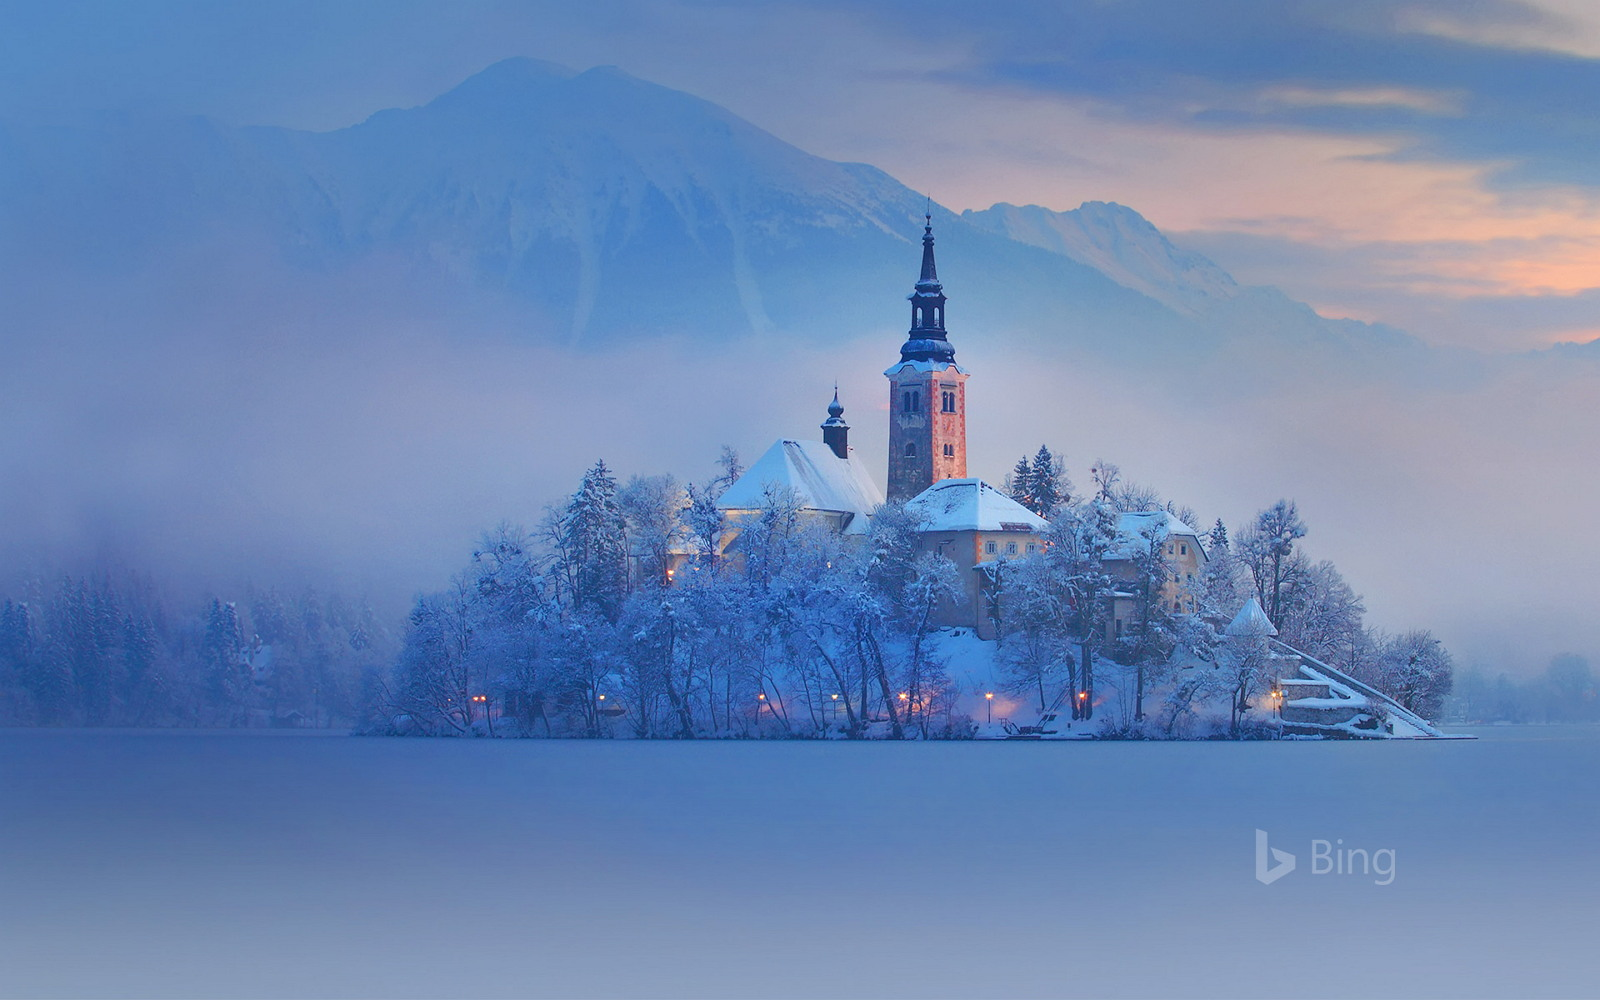 bing in winter theme for windows  download   u2022 pureinfotech